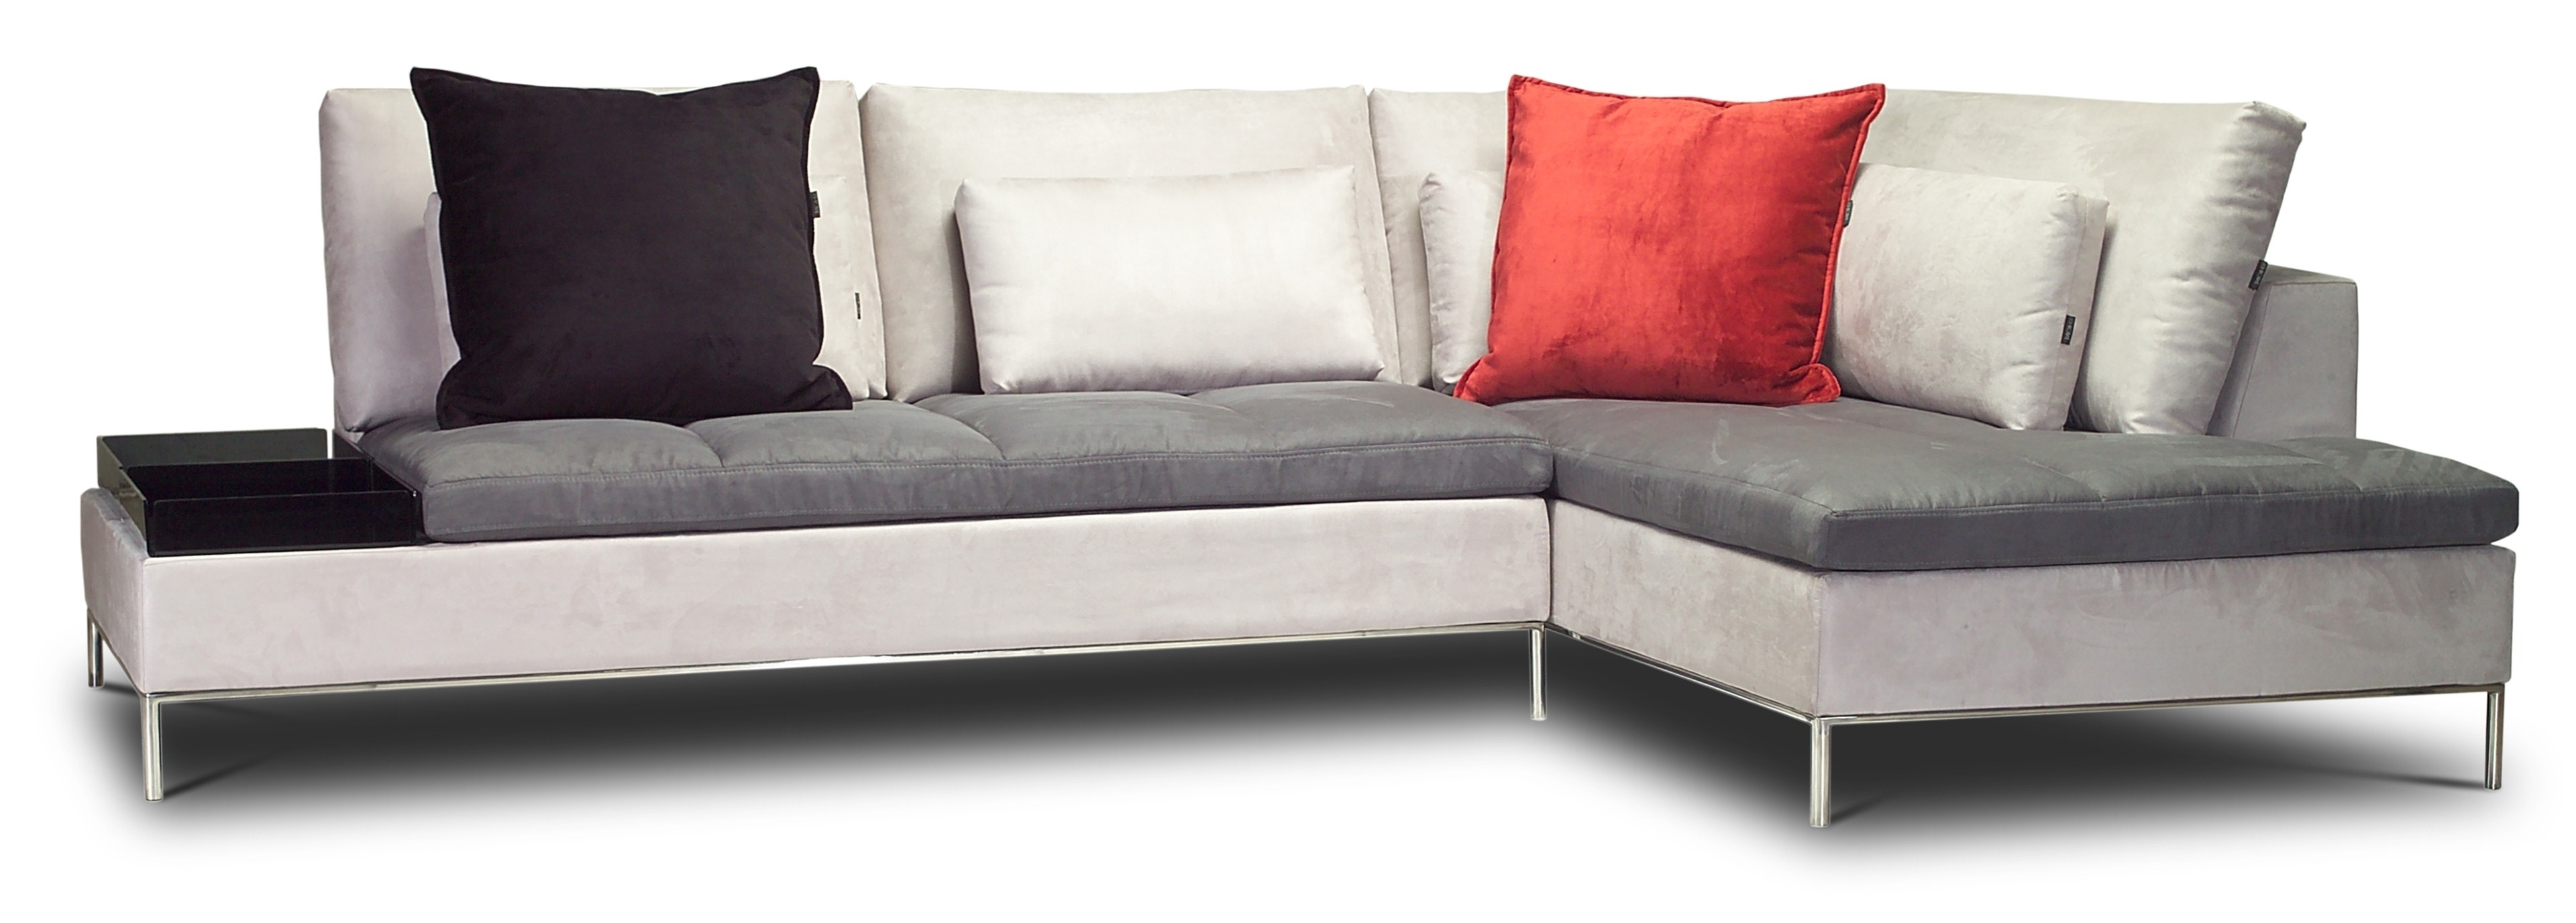 Jackknife Sectional Sofa Bed • Sofa Bed Regarding Most Recently Released Dallas Texas Sectional Sofas (Gallery 14 of 20)